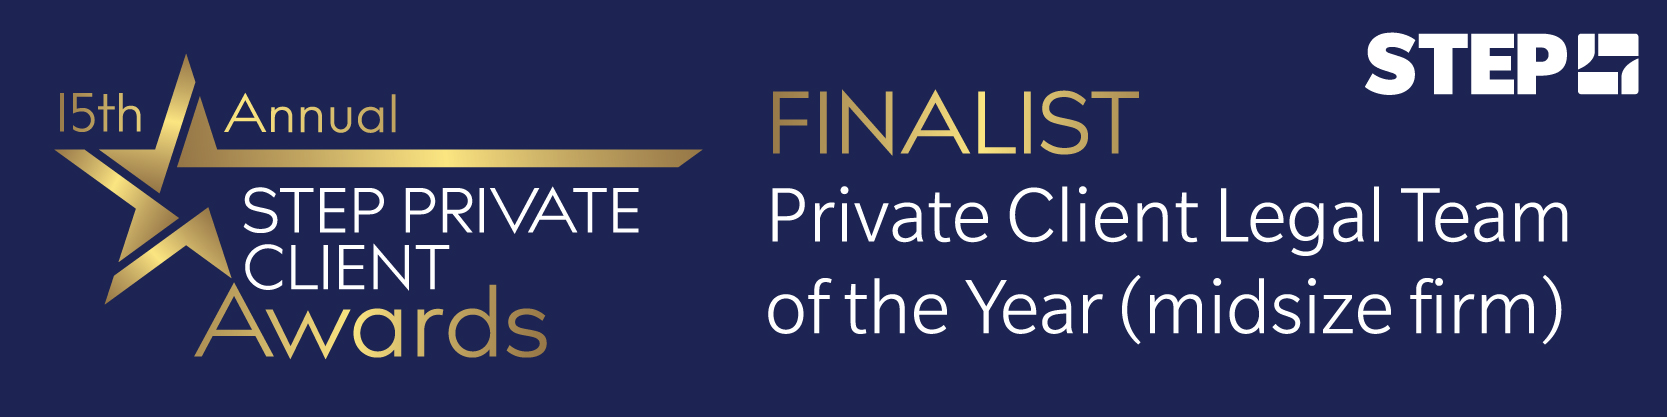 Forsters shortlisted for Private Client Legal Team of the Year (midsize firm) at the STEP Private Client Awards 2020/21